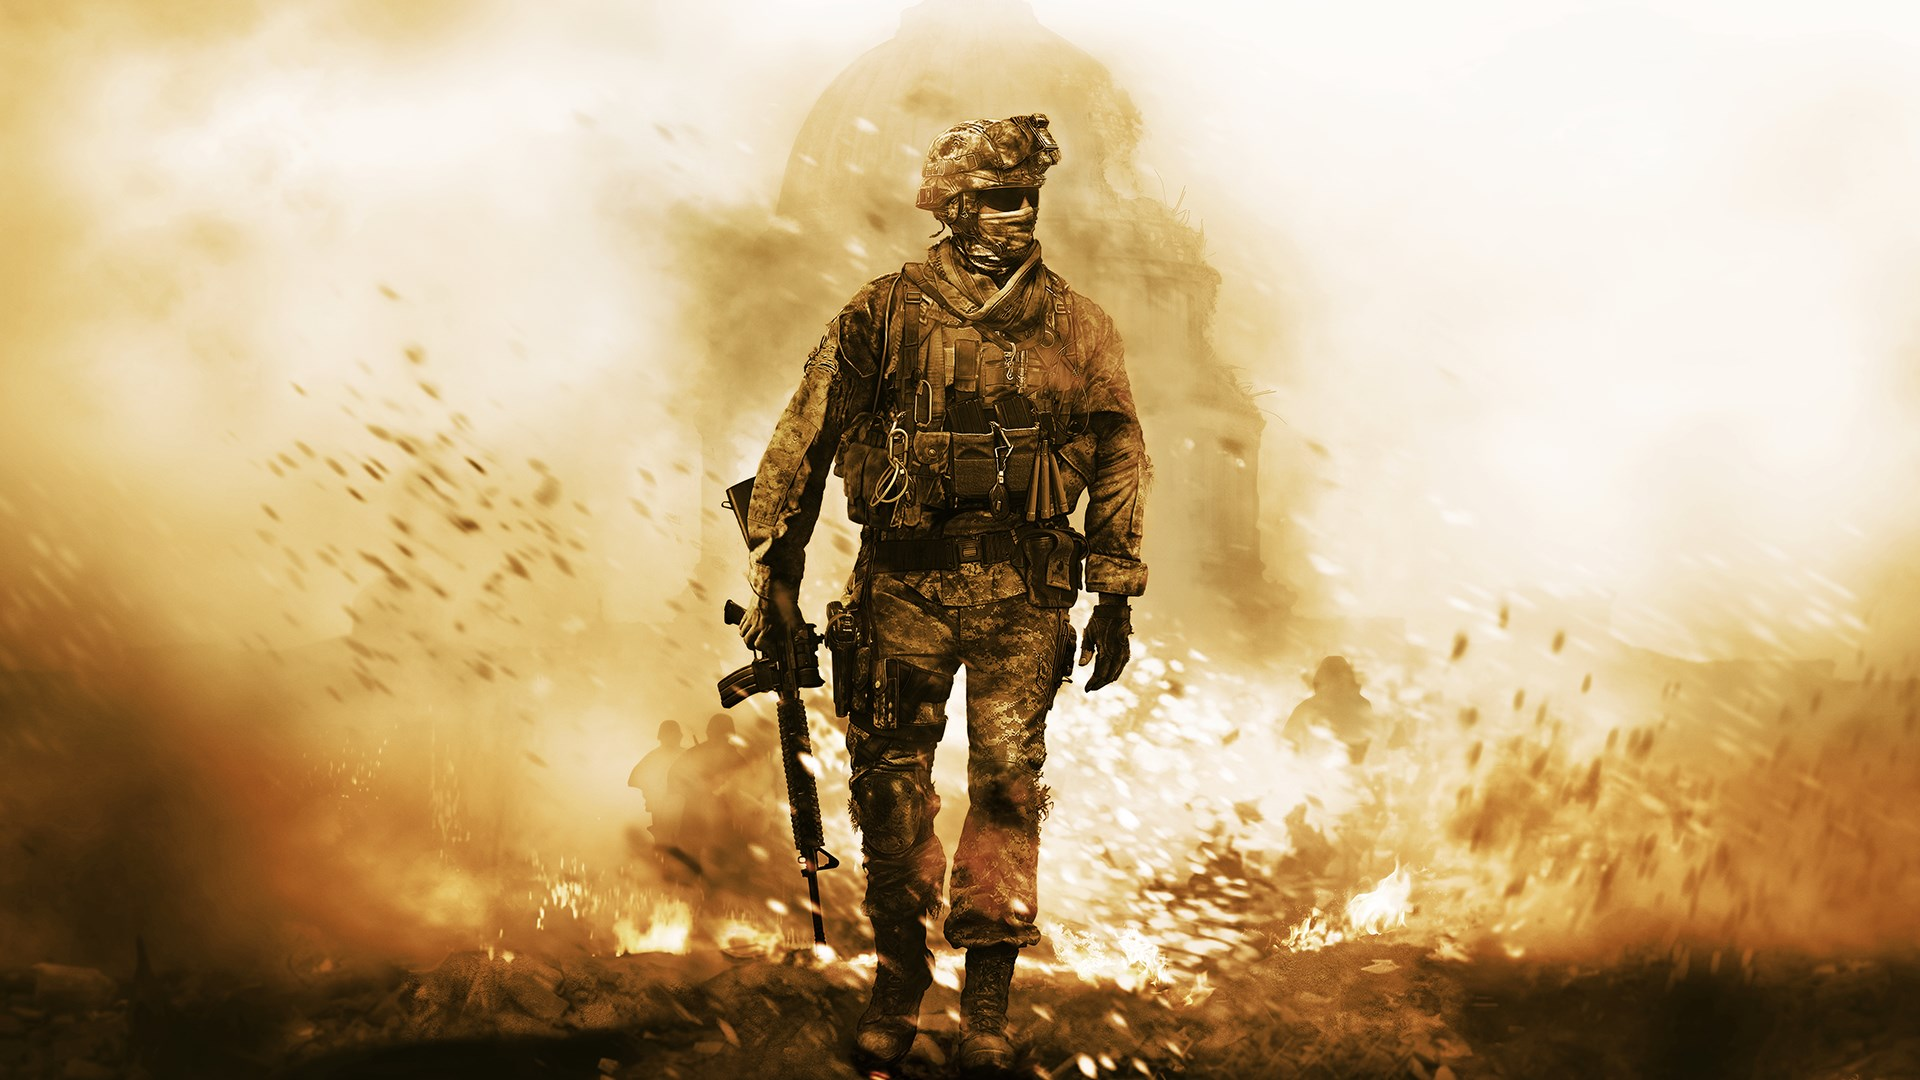 In a Battle Call Of Duty game Poster